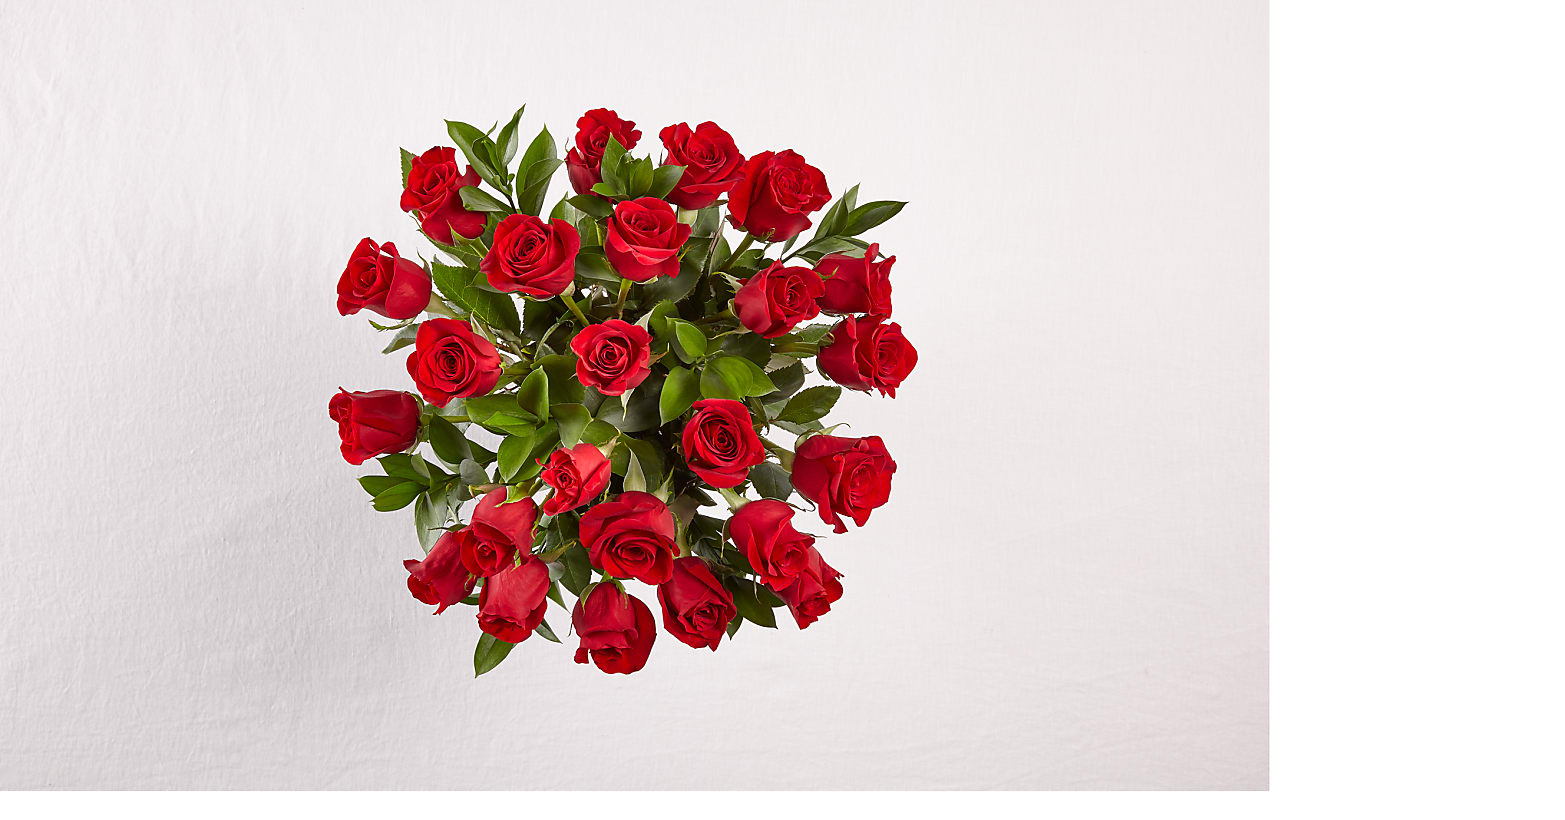 24 Red Roses with Glass Vase - Image 5 Of 5